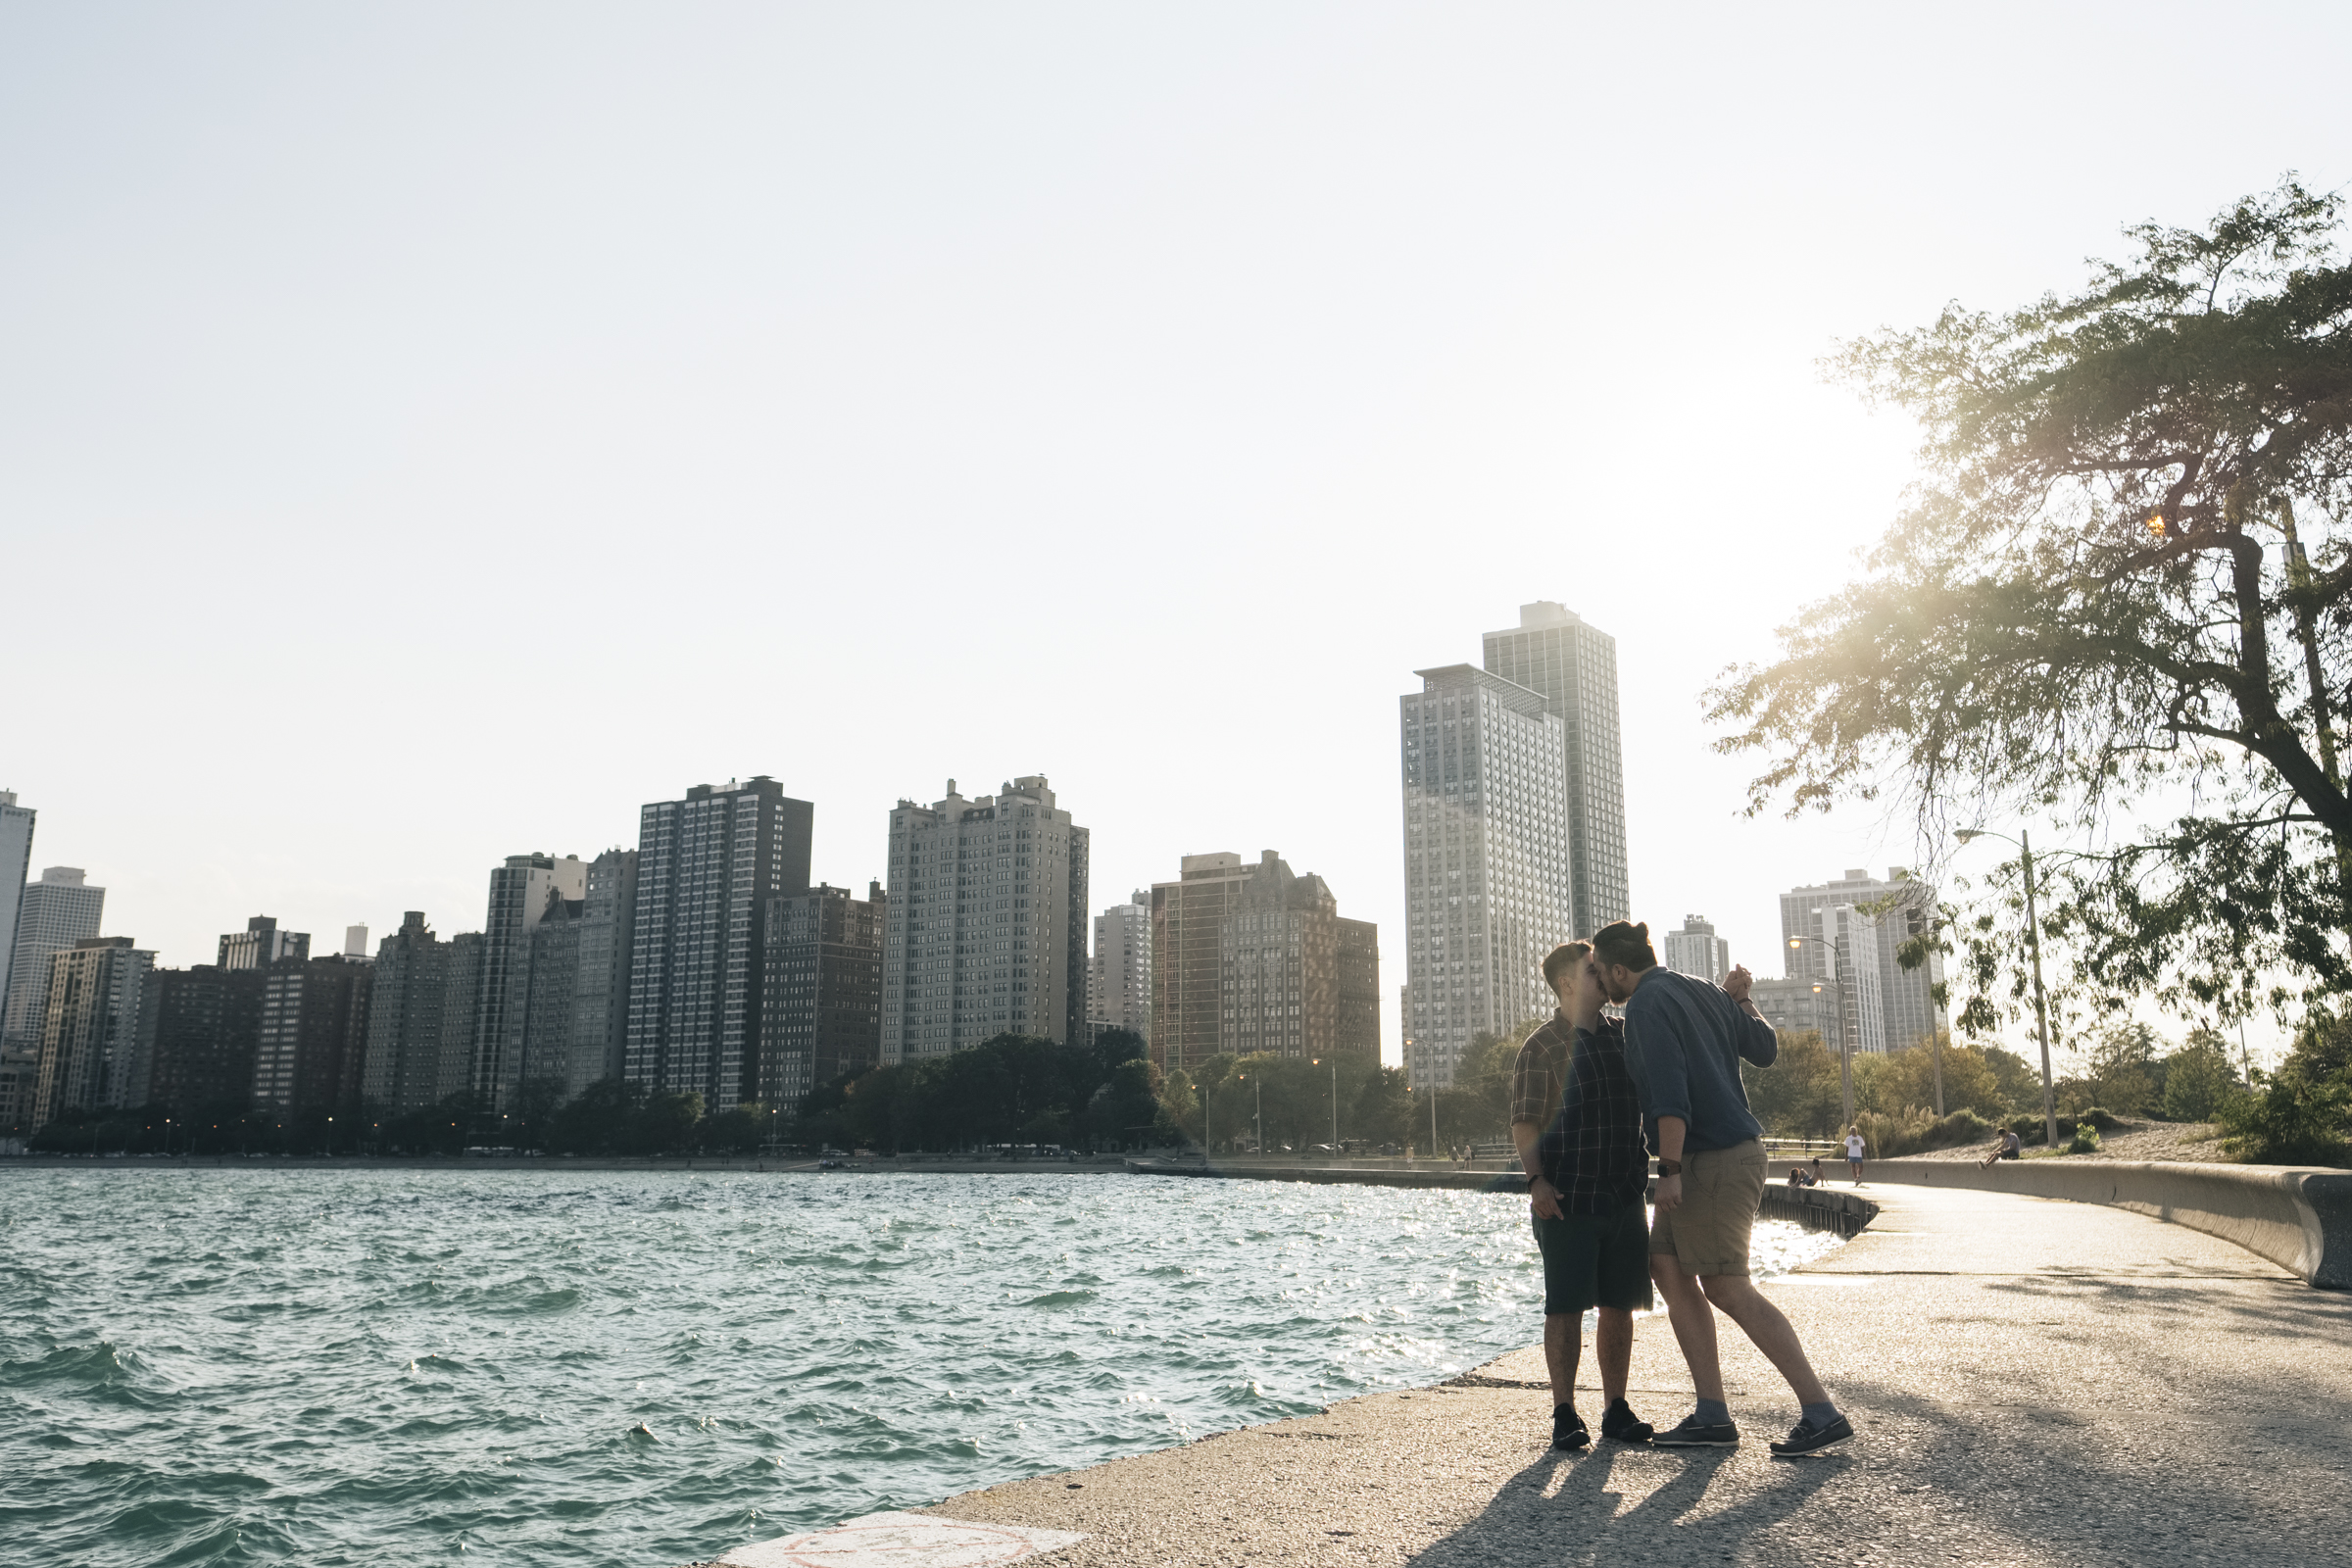 Gay couple dances on the edge of the water near Lake Michigan